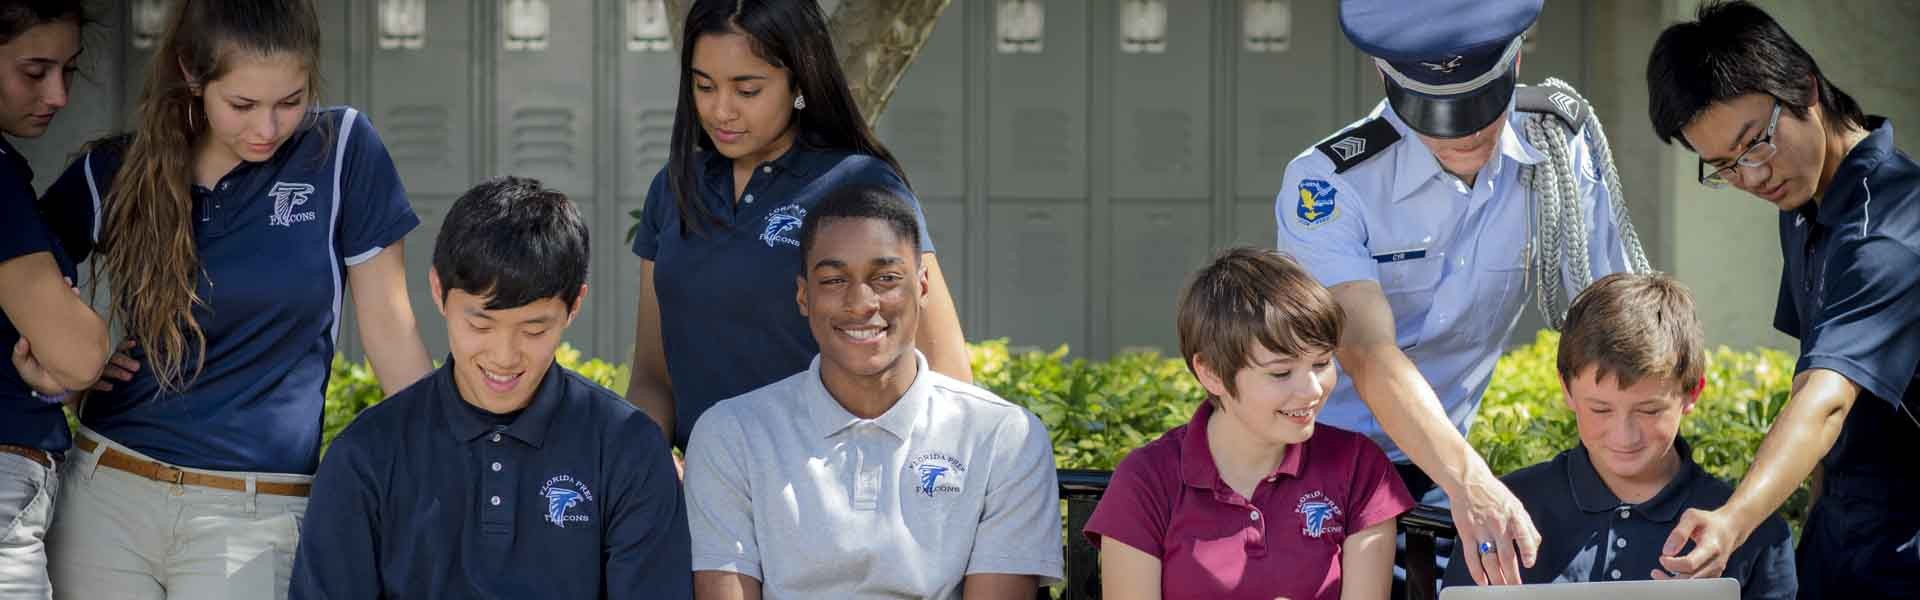 FloridaPreparatoryAcademy-Highschool-Florida-GroupPictureDiversity-MAin-Banner-2019